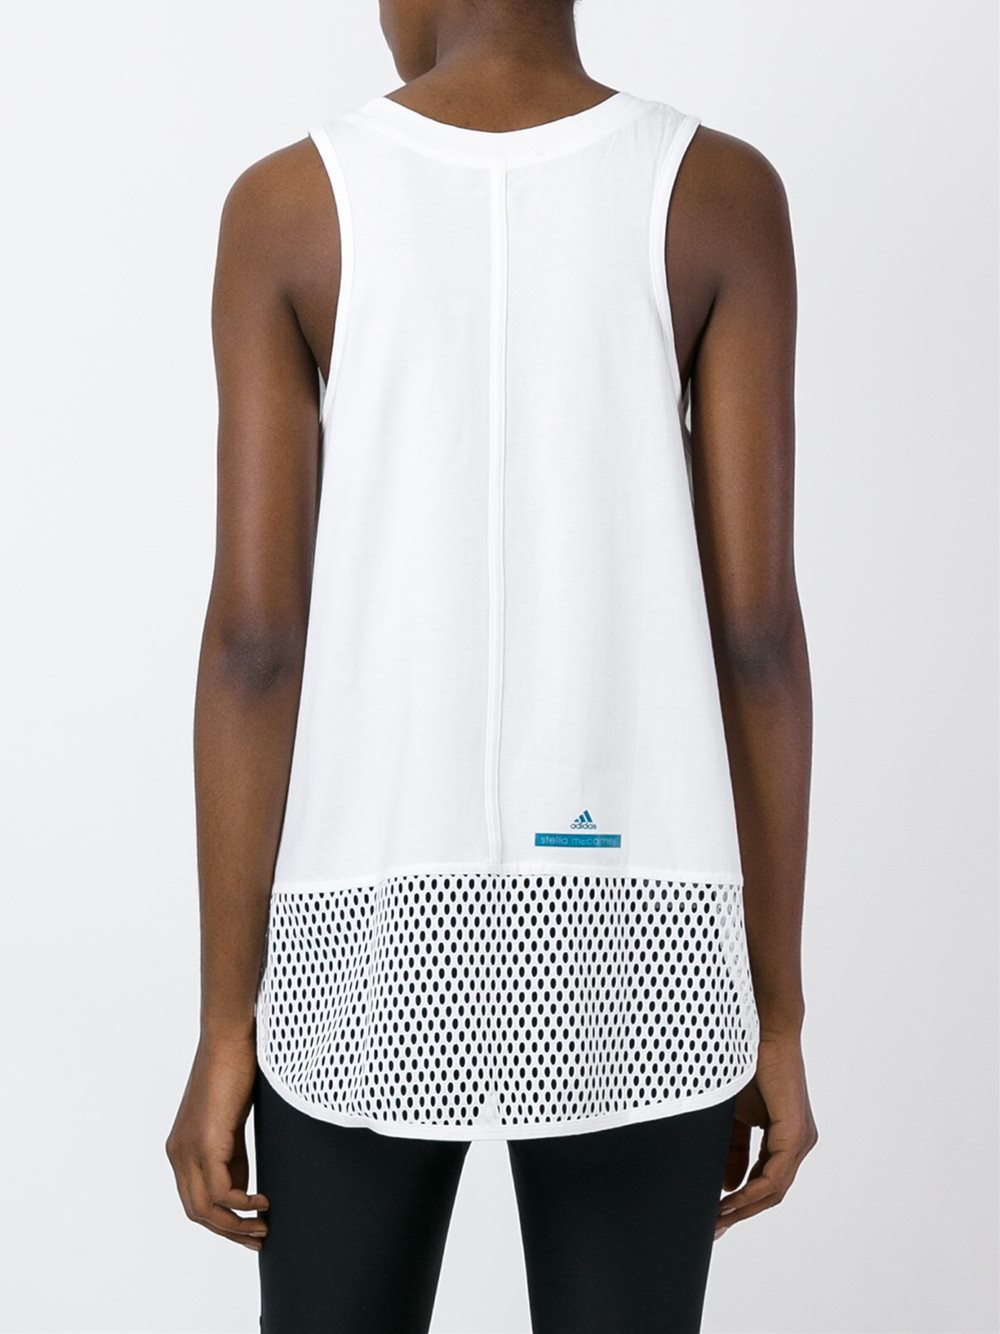 lyst adidas by stella mccartney mesh hem tank top in white. Black Bedroom Furniture Sets. Home Design Ideas